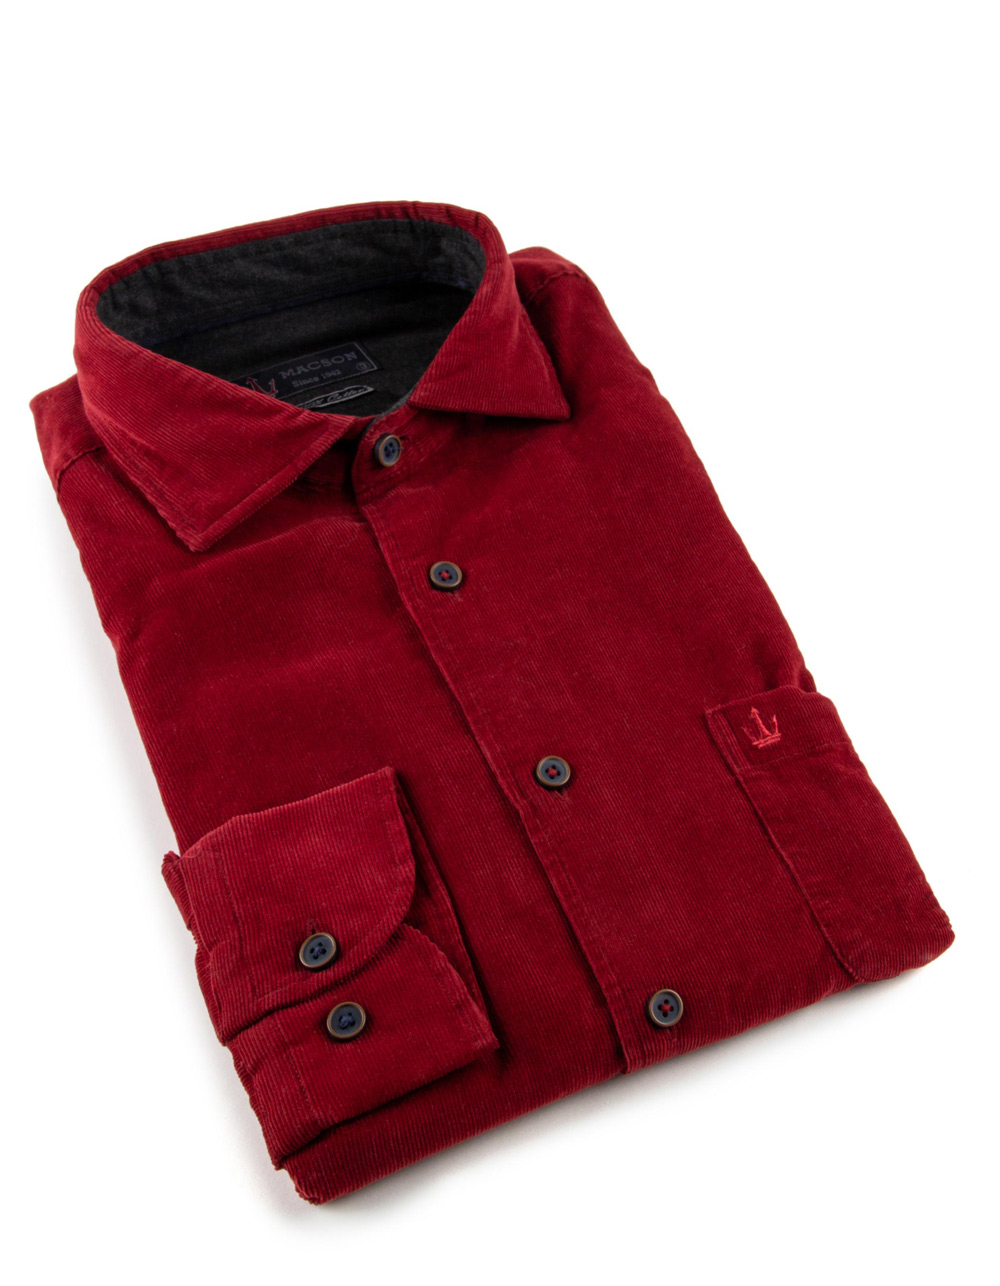 Red finest corduroy shirt